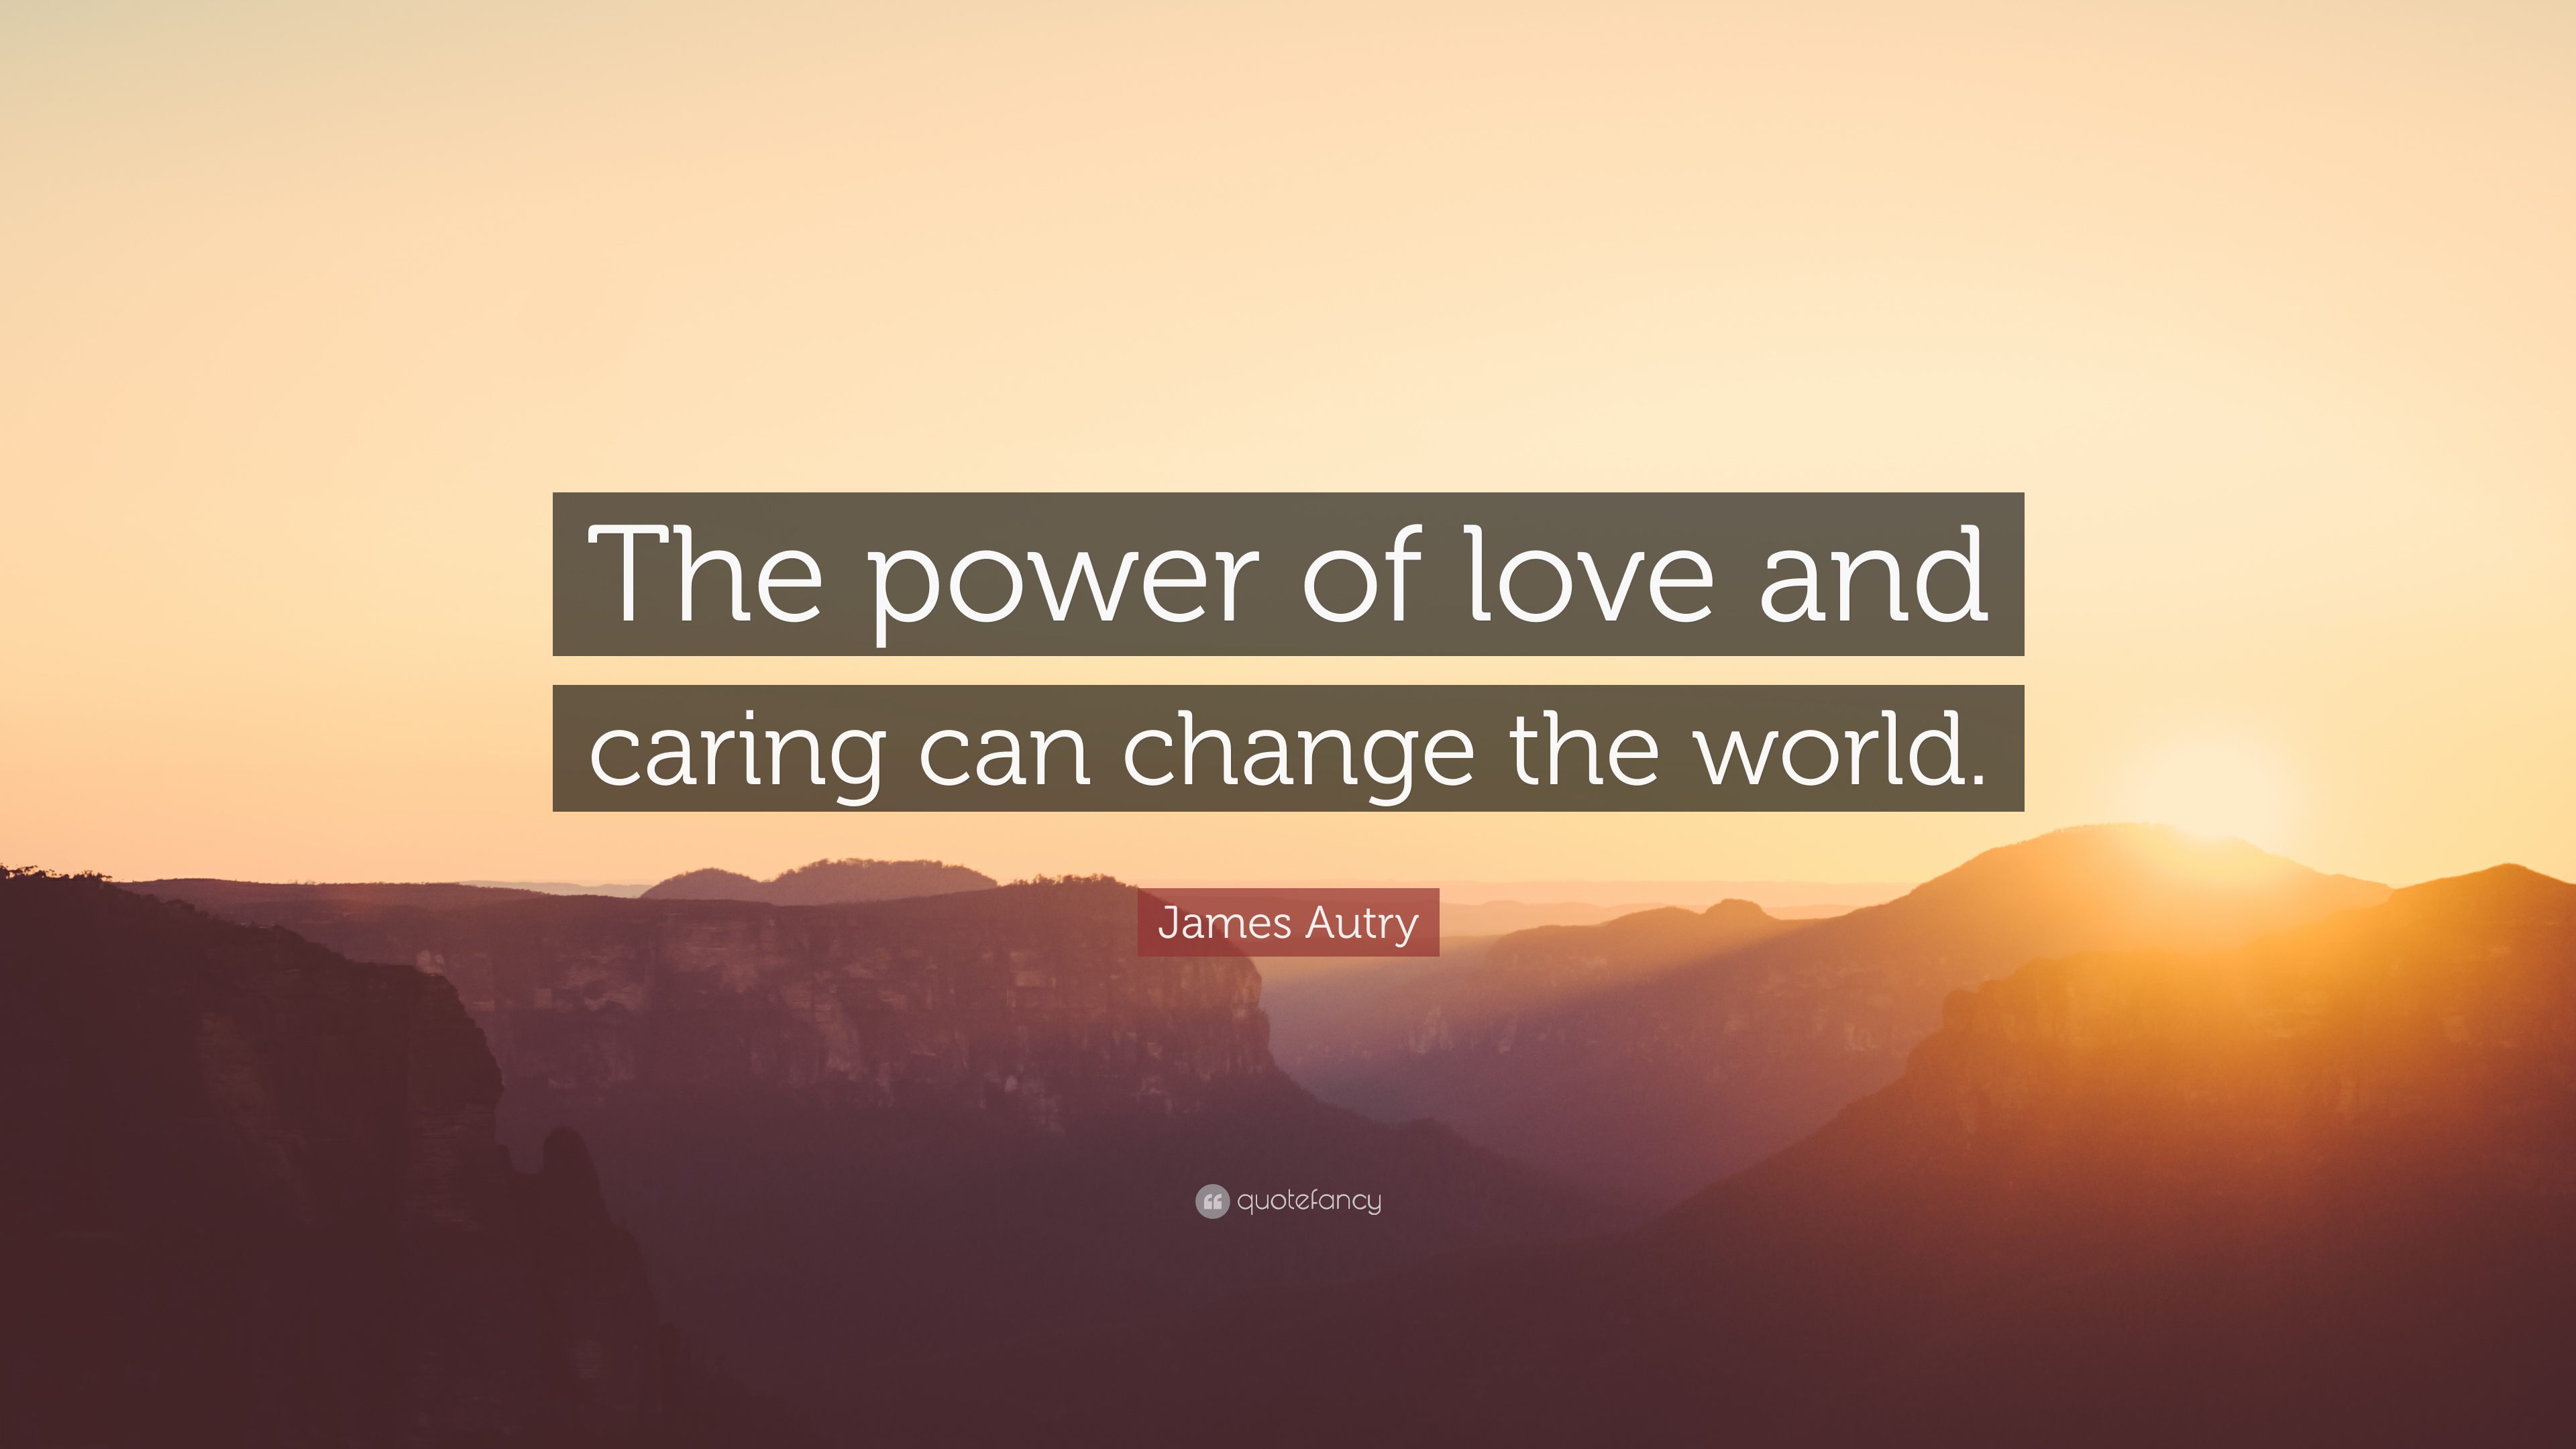 Top 6 James Autry Quotes | 2021 Edition | Free Images - QuoteFancy